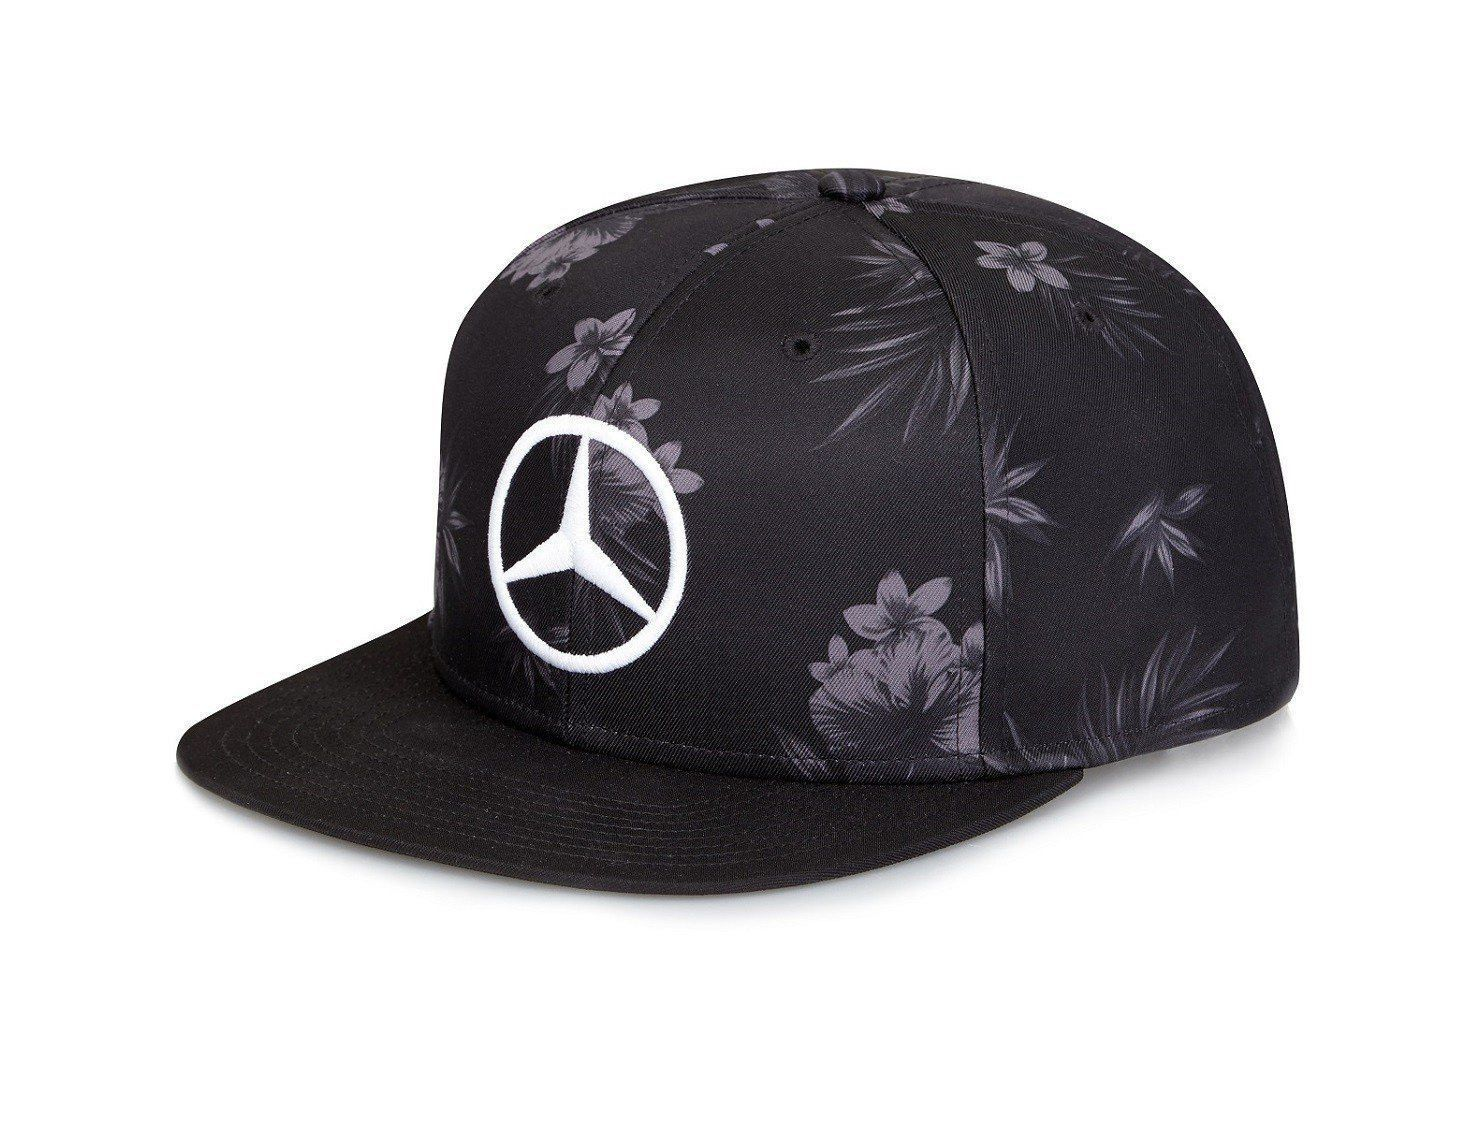 Men's Mercedes Benz Lewis Hamilton Formula One Racing Snapback Hat - Black / White